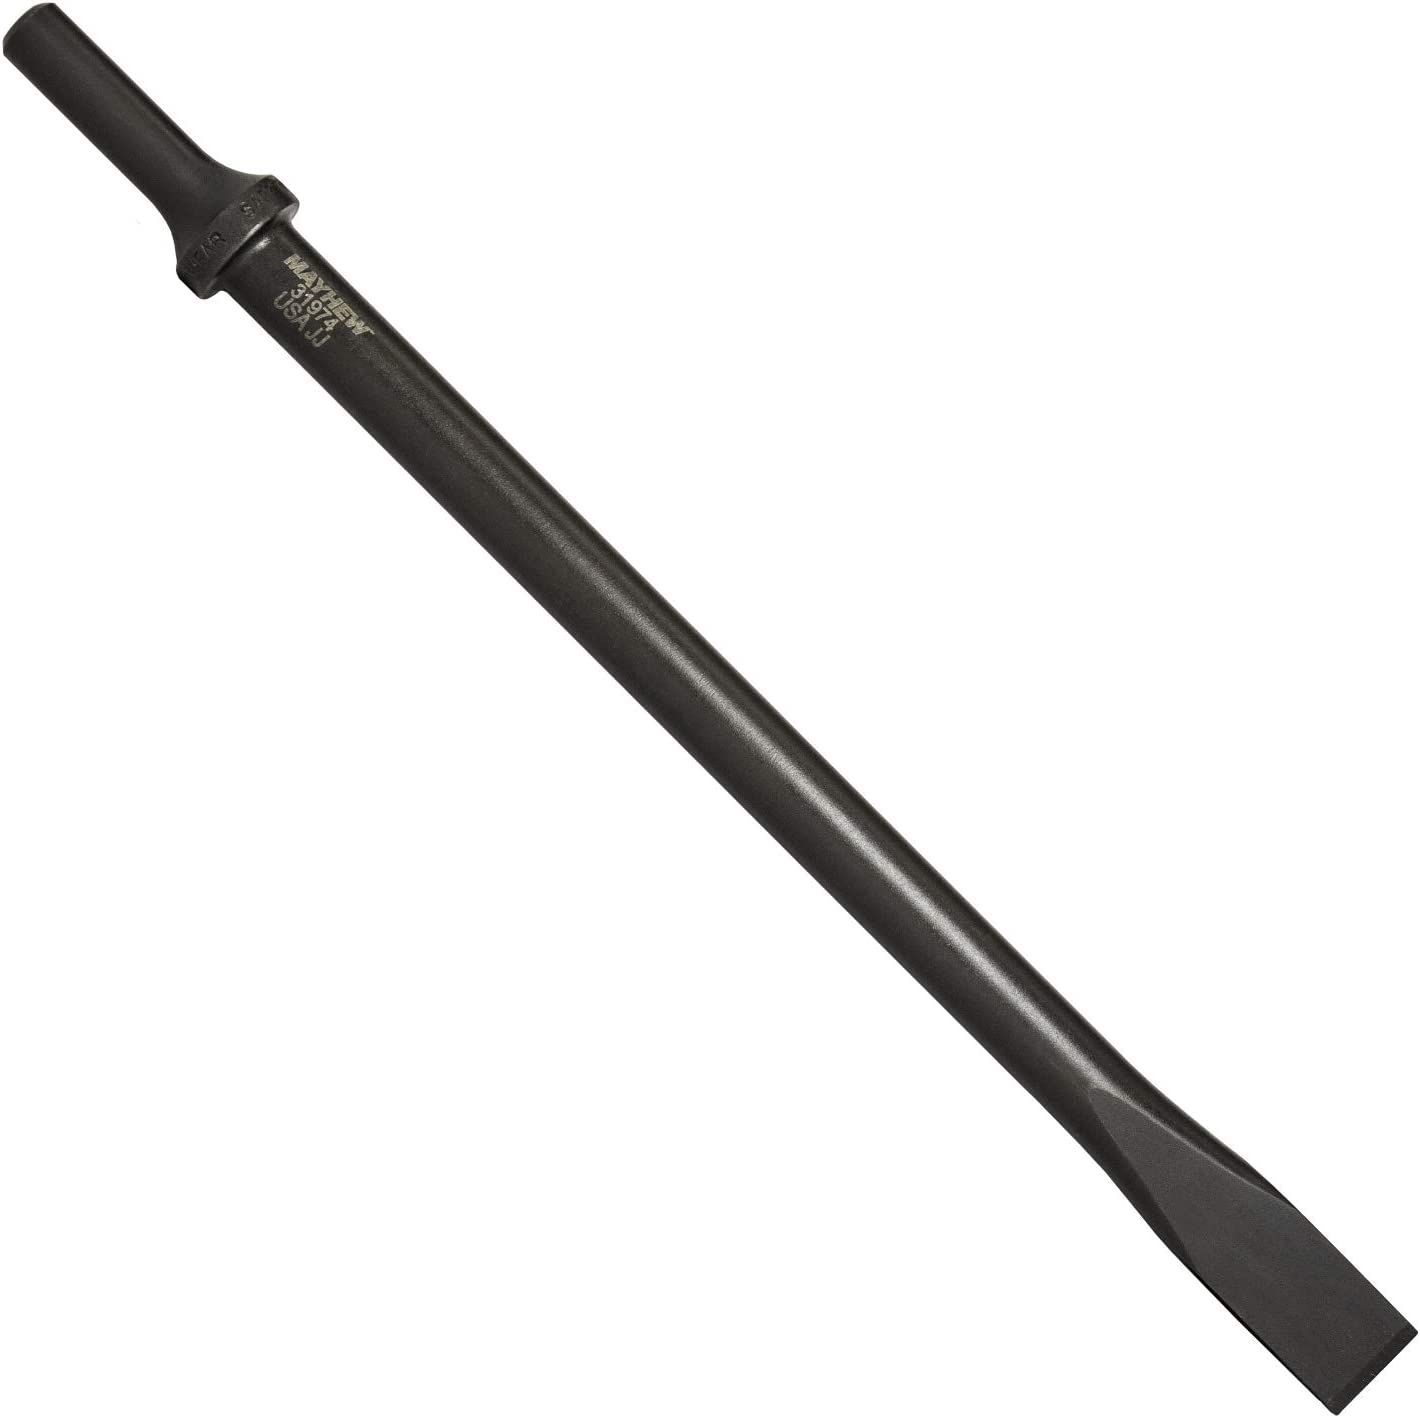 Mayhew Pro 31974 10-Inch Pneumatic Max 83% OFF Cold trust Chisel